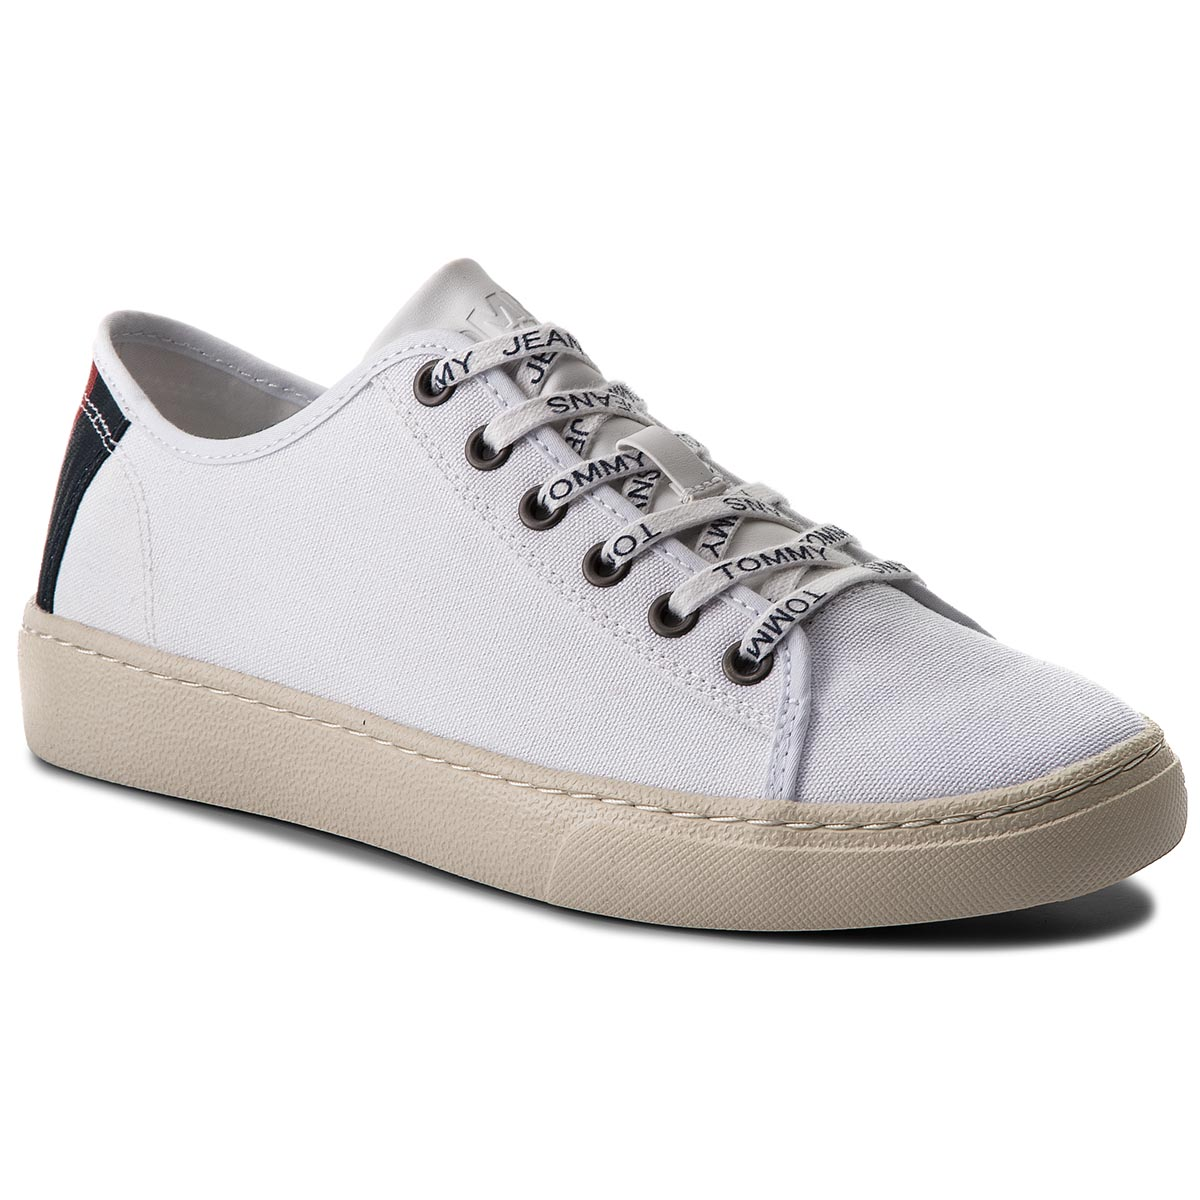 Laisvalaikio batai TOMMY JEANS - Light Textile Low EM0EM00102 White 100